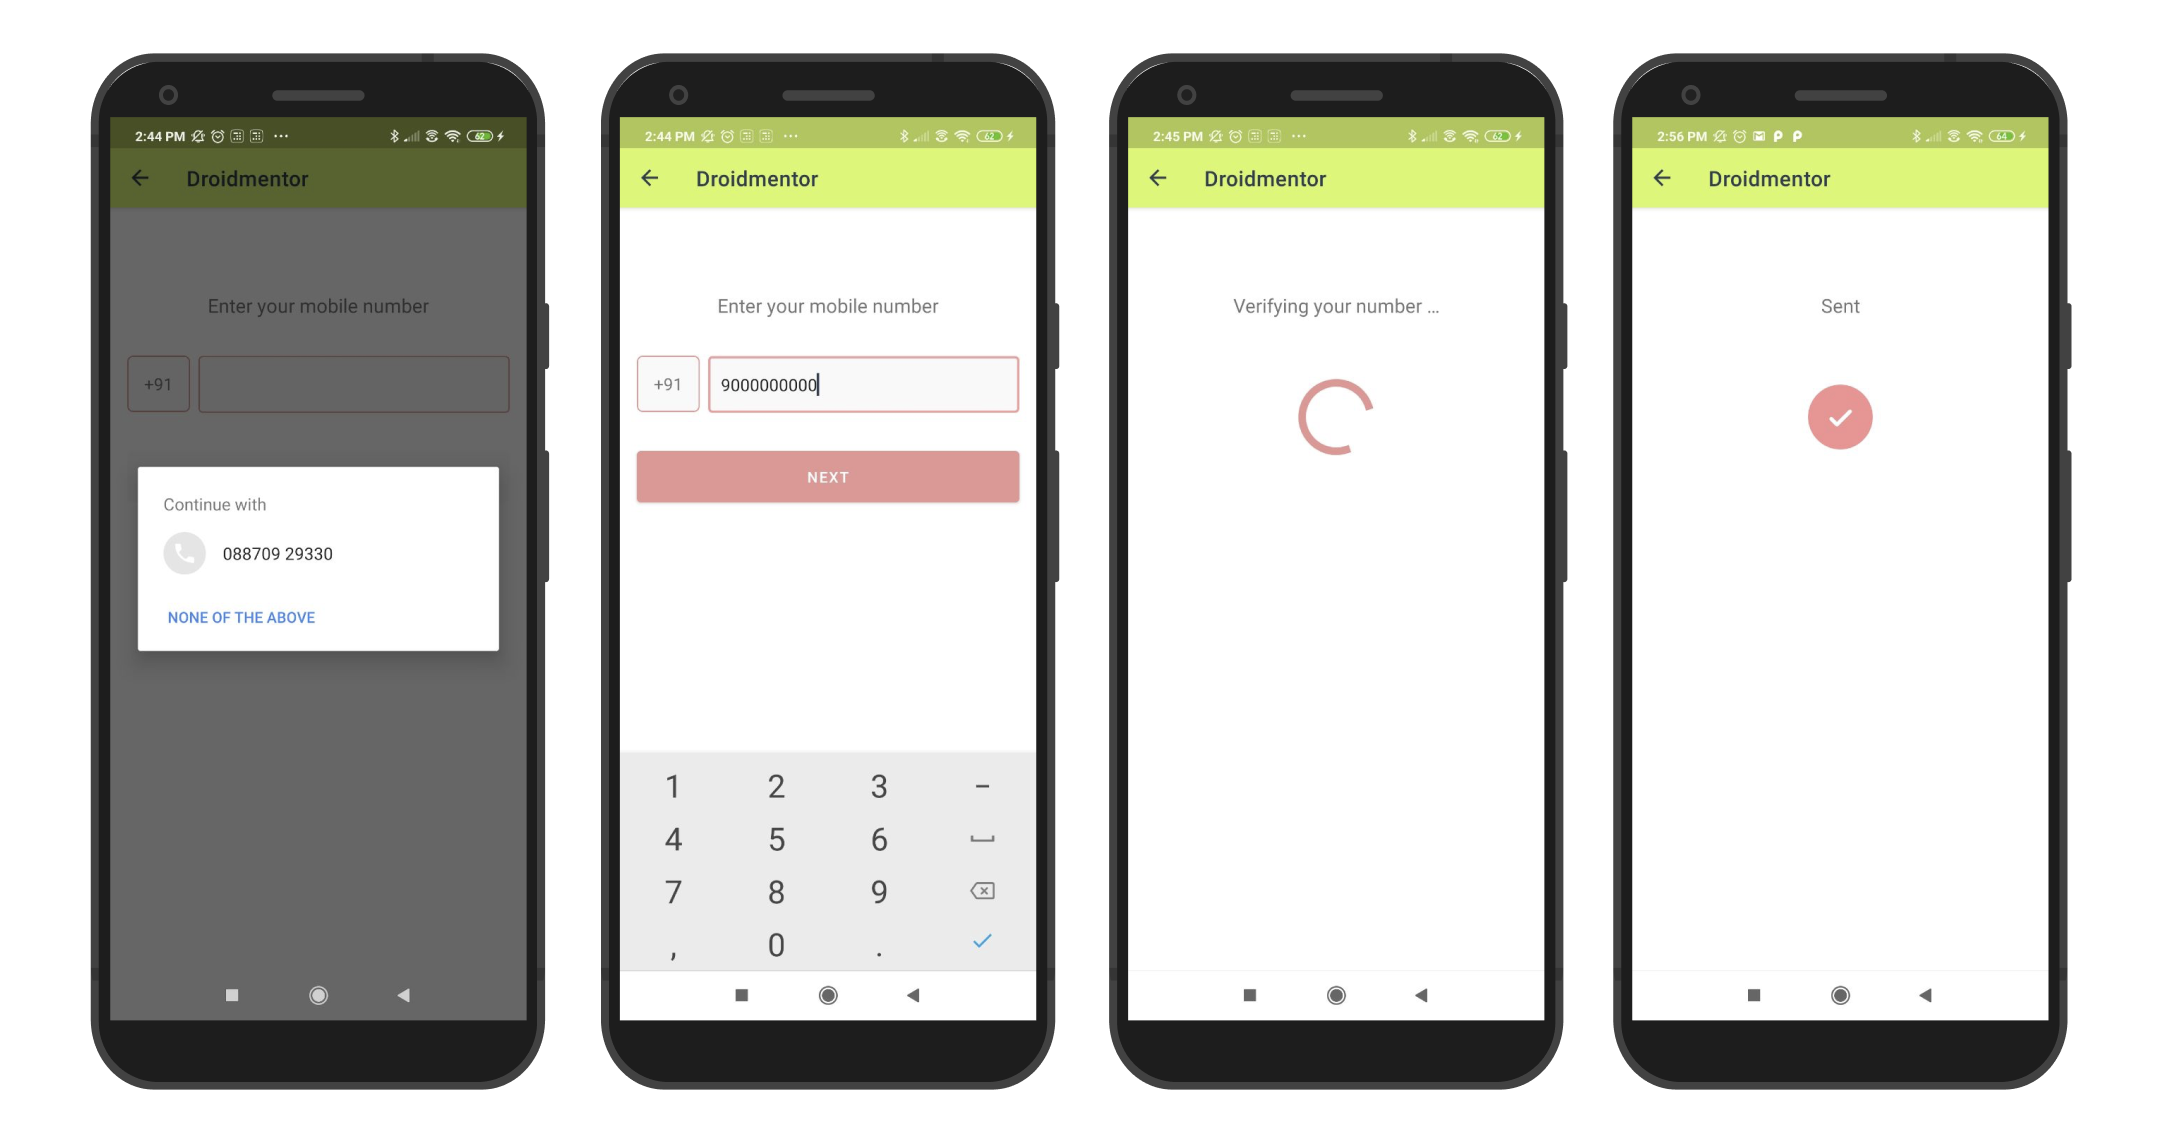 Phone number auth using Firebase Authentication SDK